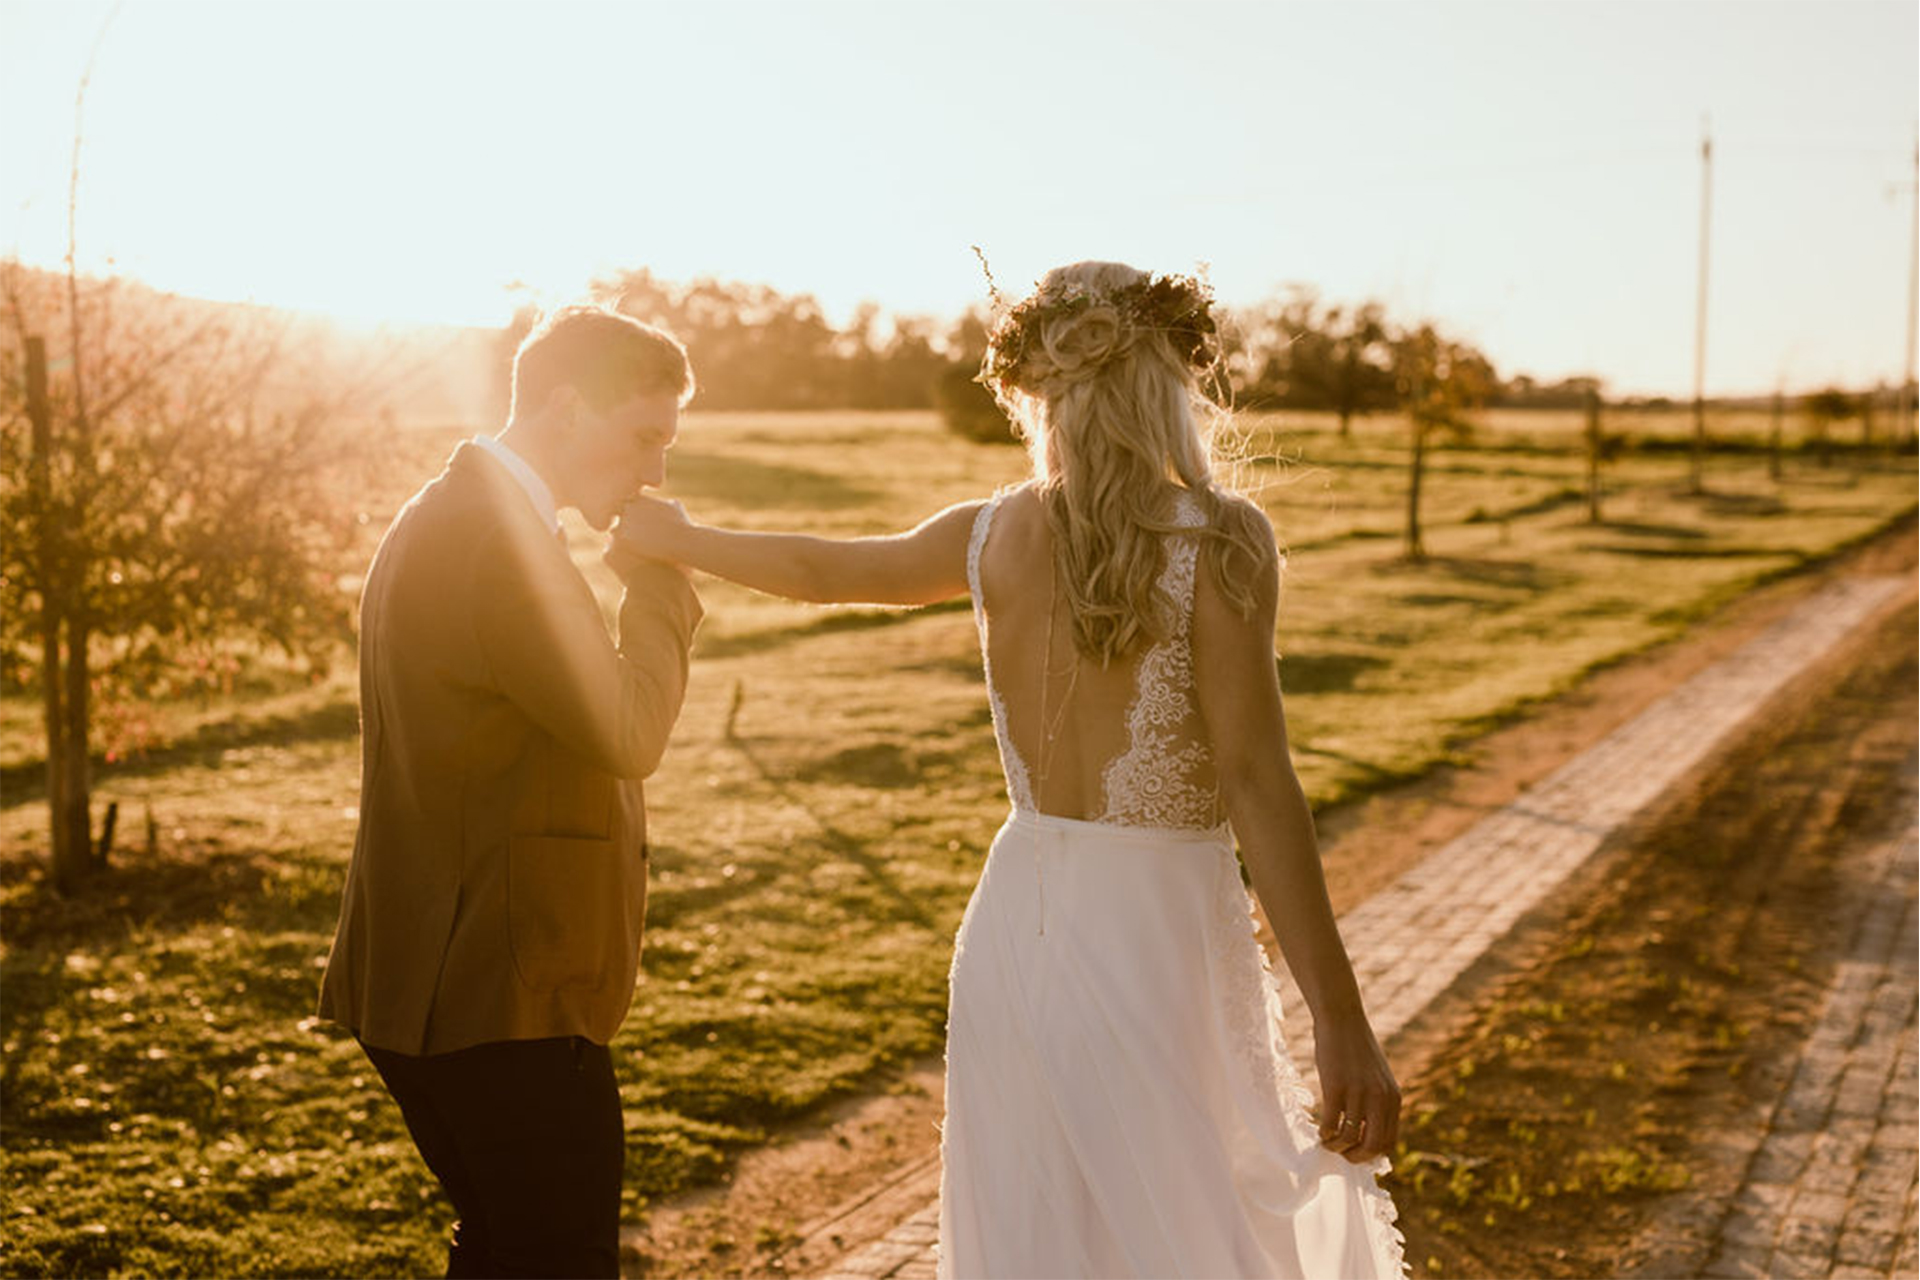 Husband and wife walking along during golden hour